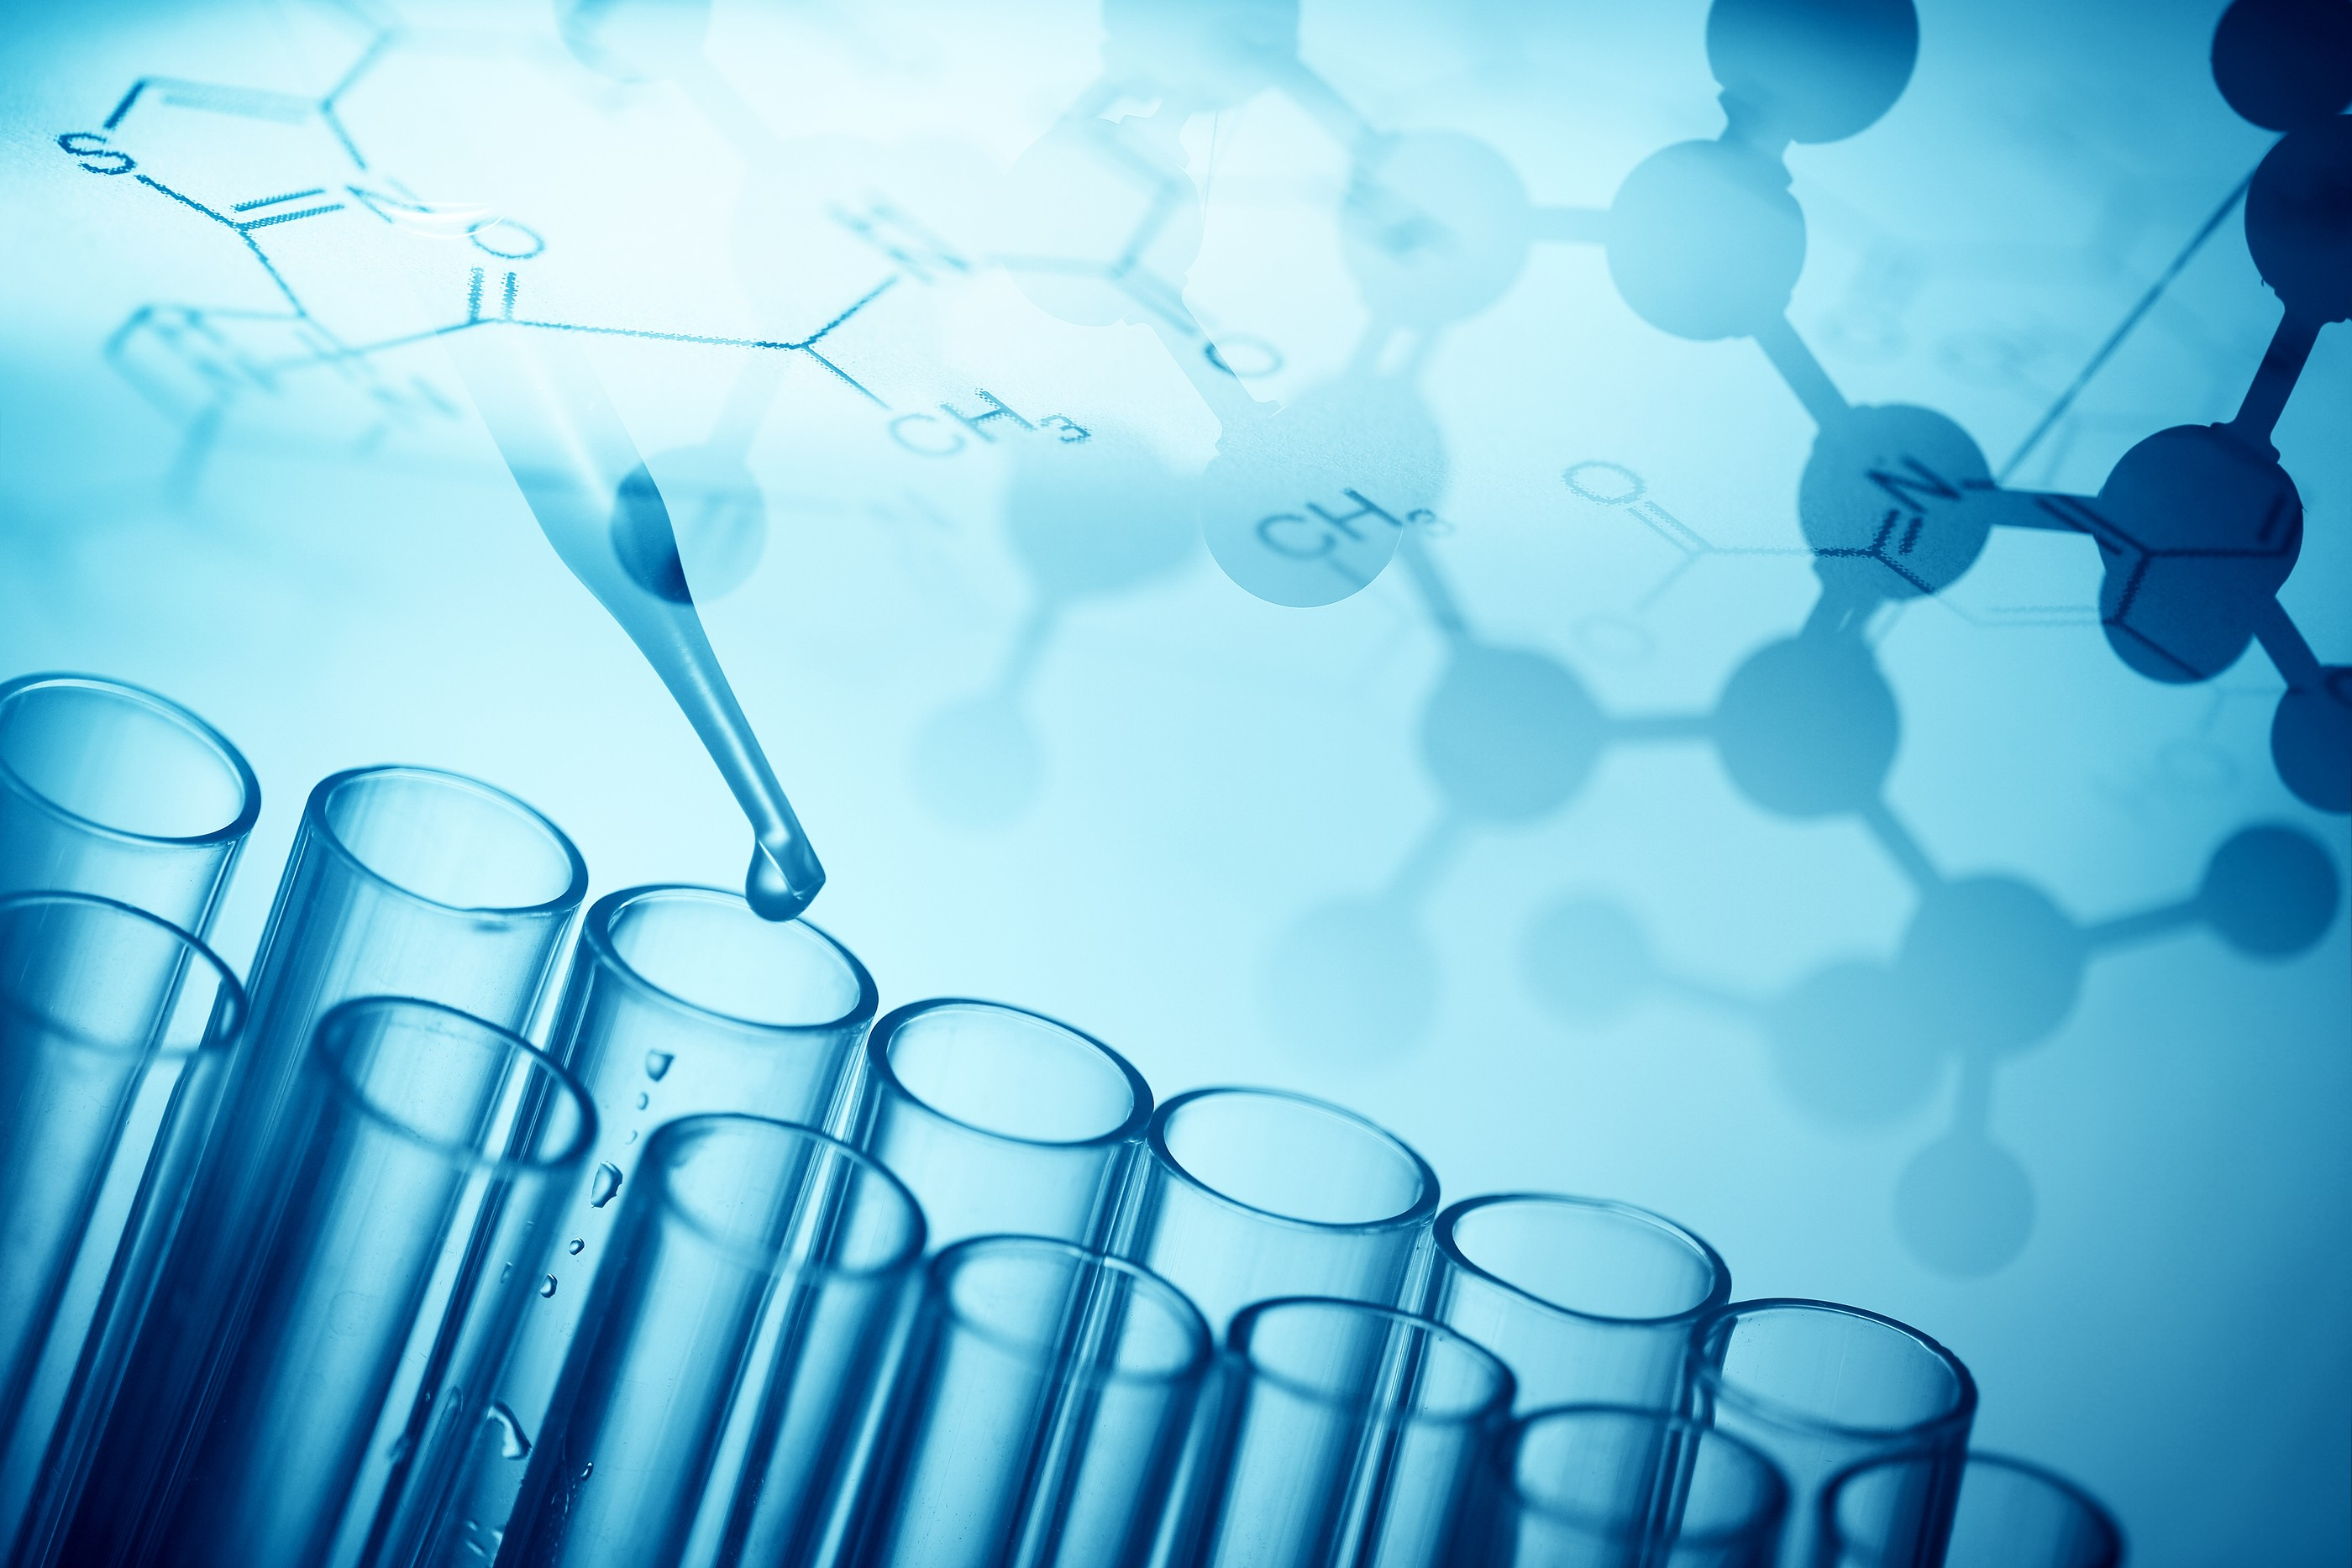 Chemistry background ·① Download free stunning High ...